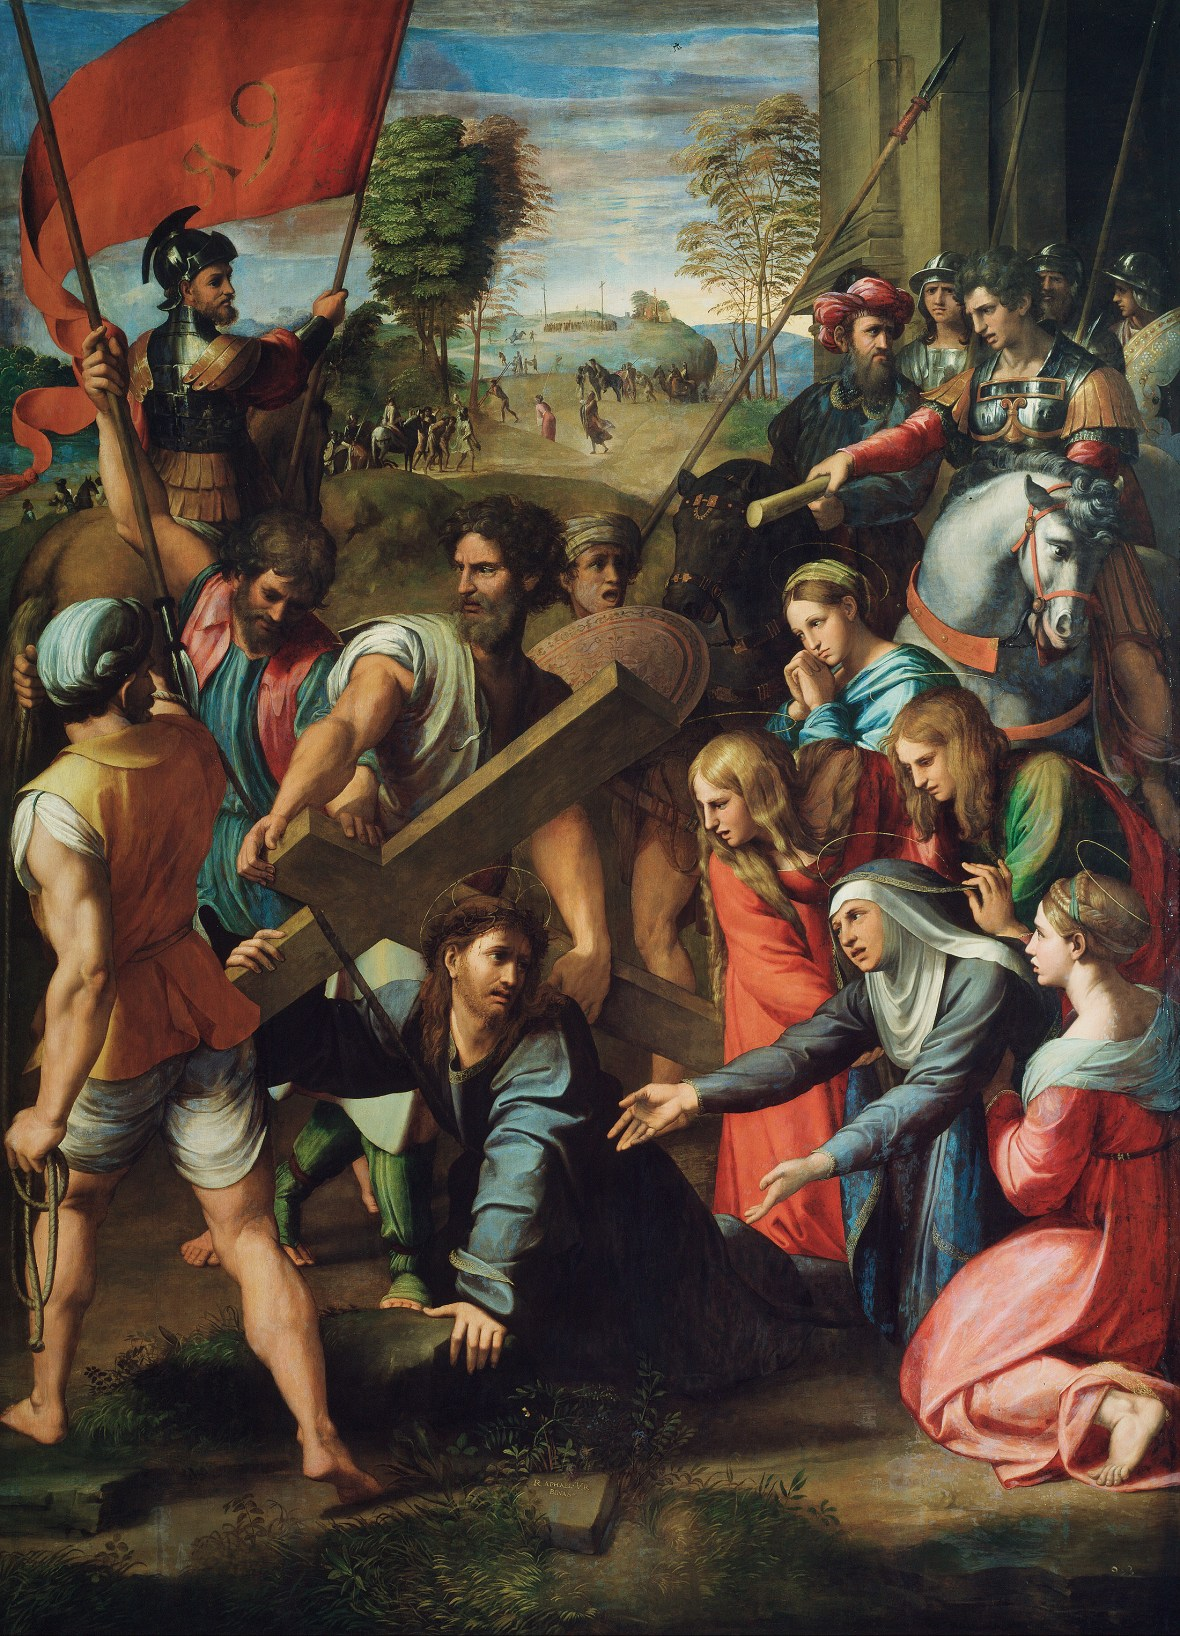 Raphael, Christ Falling on the Way to Calvary, 1516.